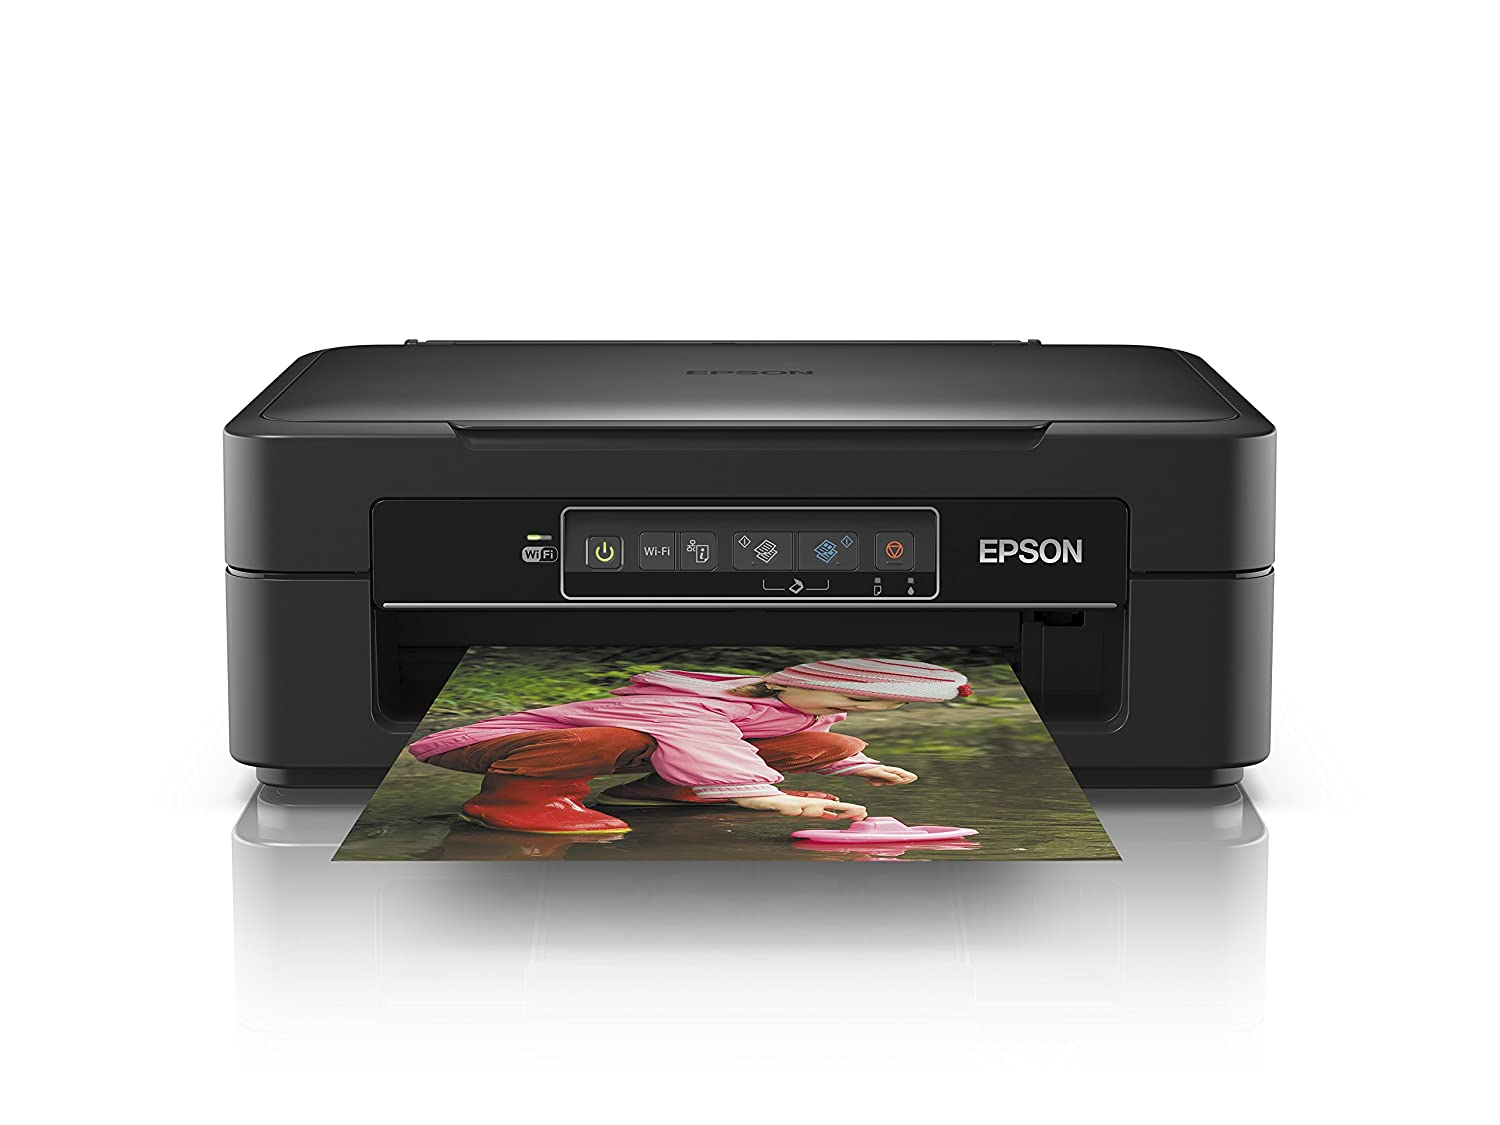 Epson Expression Home XP-245 5760 x 1440DPI Ad inchiostro A4 27ppm Wi-Fi 235L553